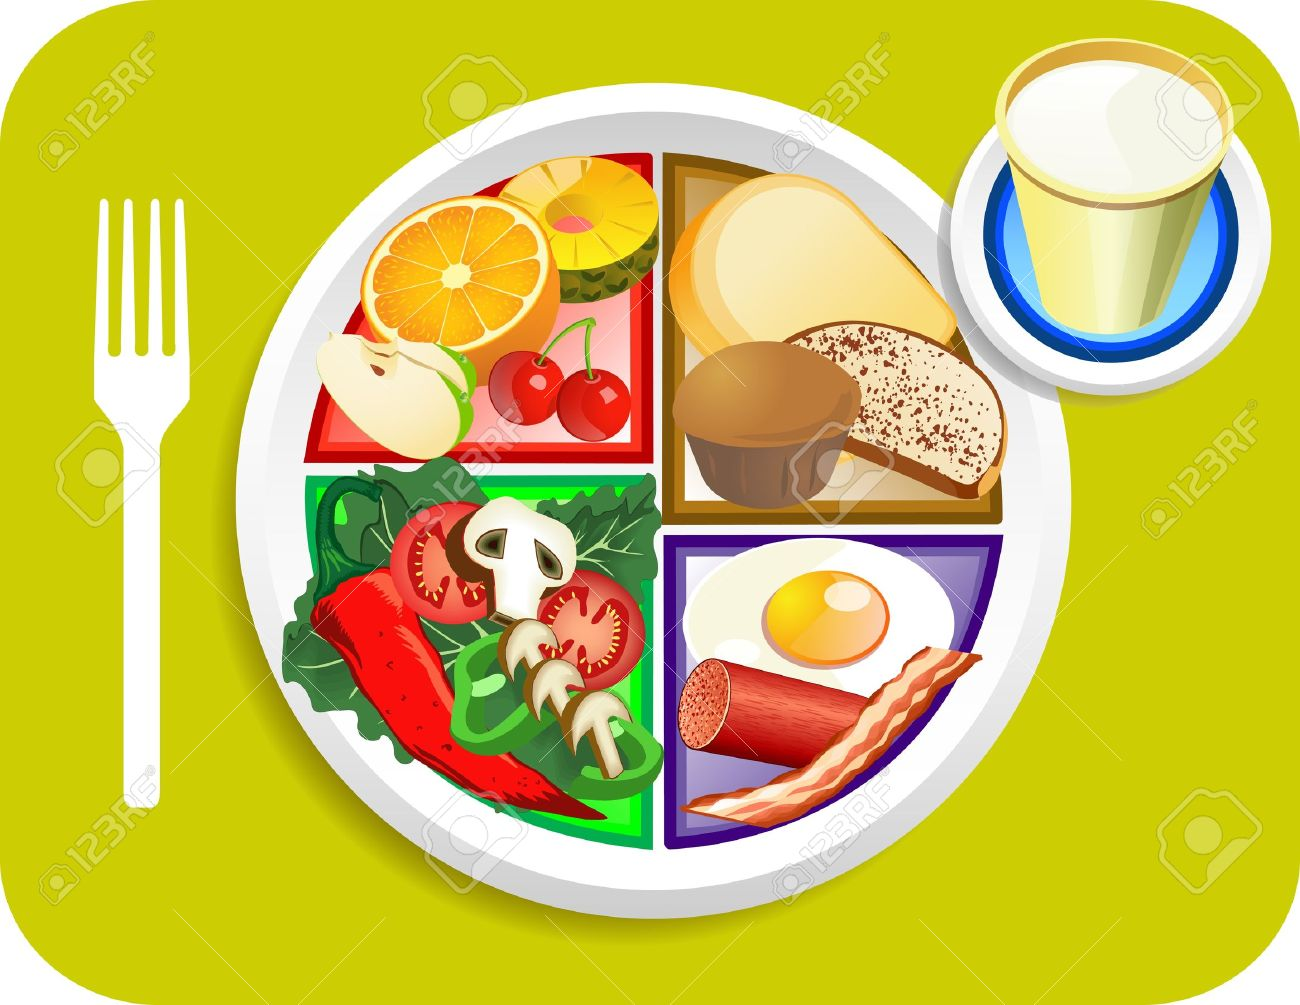 Vector illustration of Breakfast items for the new my plate replacing food pyramid. Stock Vector - 9718924